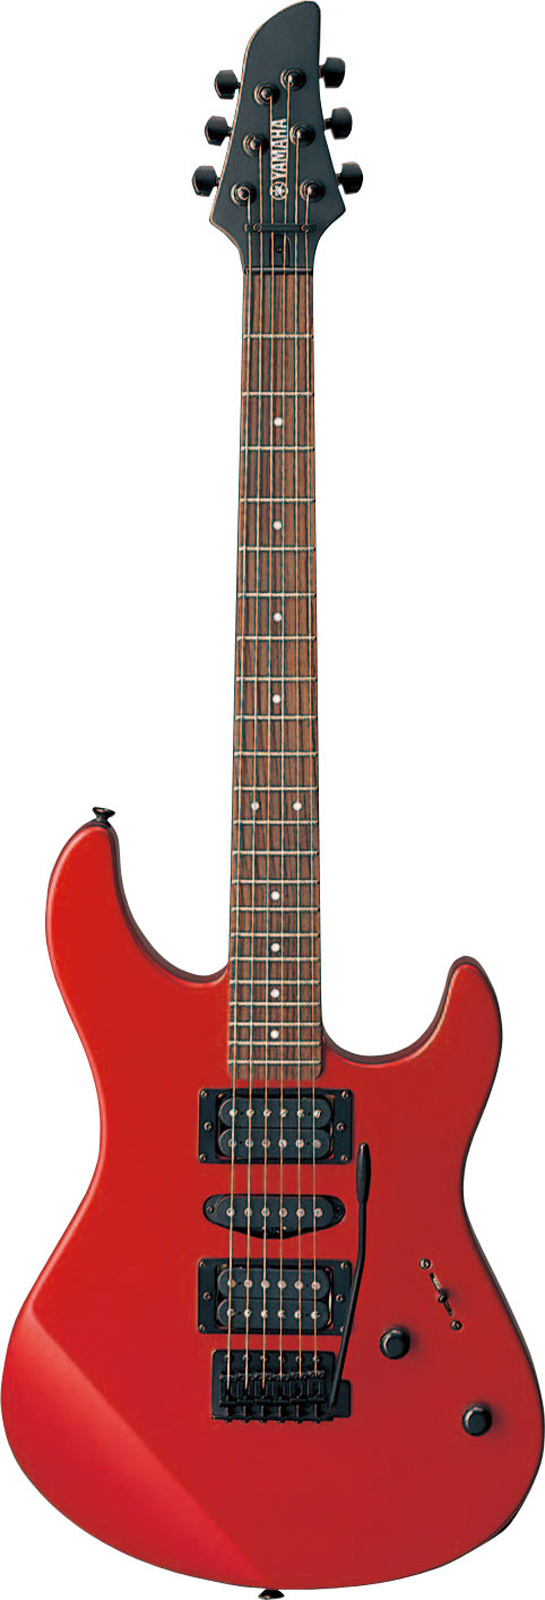 Yamaha Rgx121zrm Red Metallic